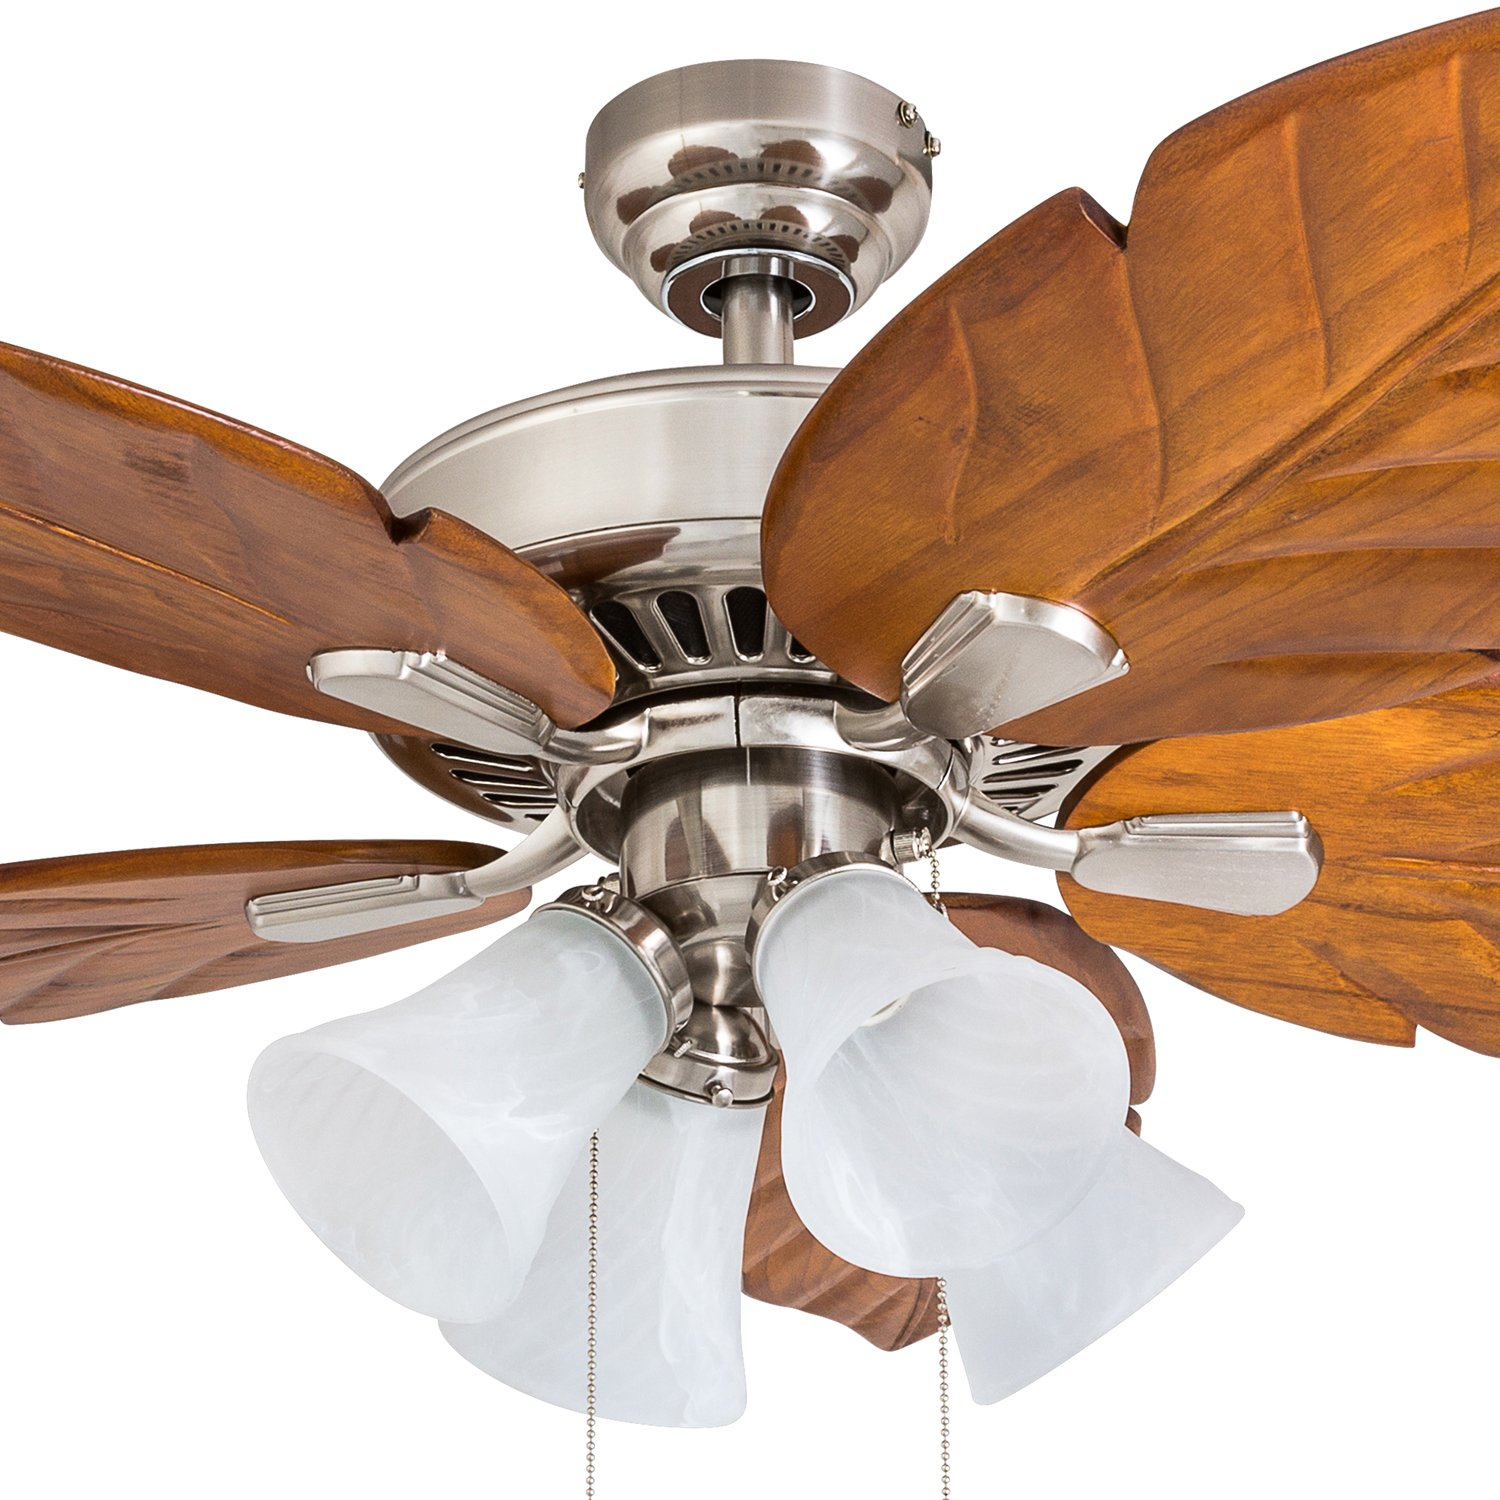 Prominence Home 50662-01 Grayton Tropical Ceiling Fan, 52 , Dark Cherry Hand Carved Wood, Brushed Nickel